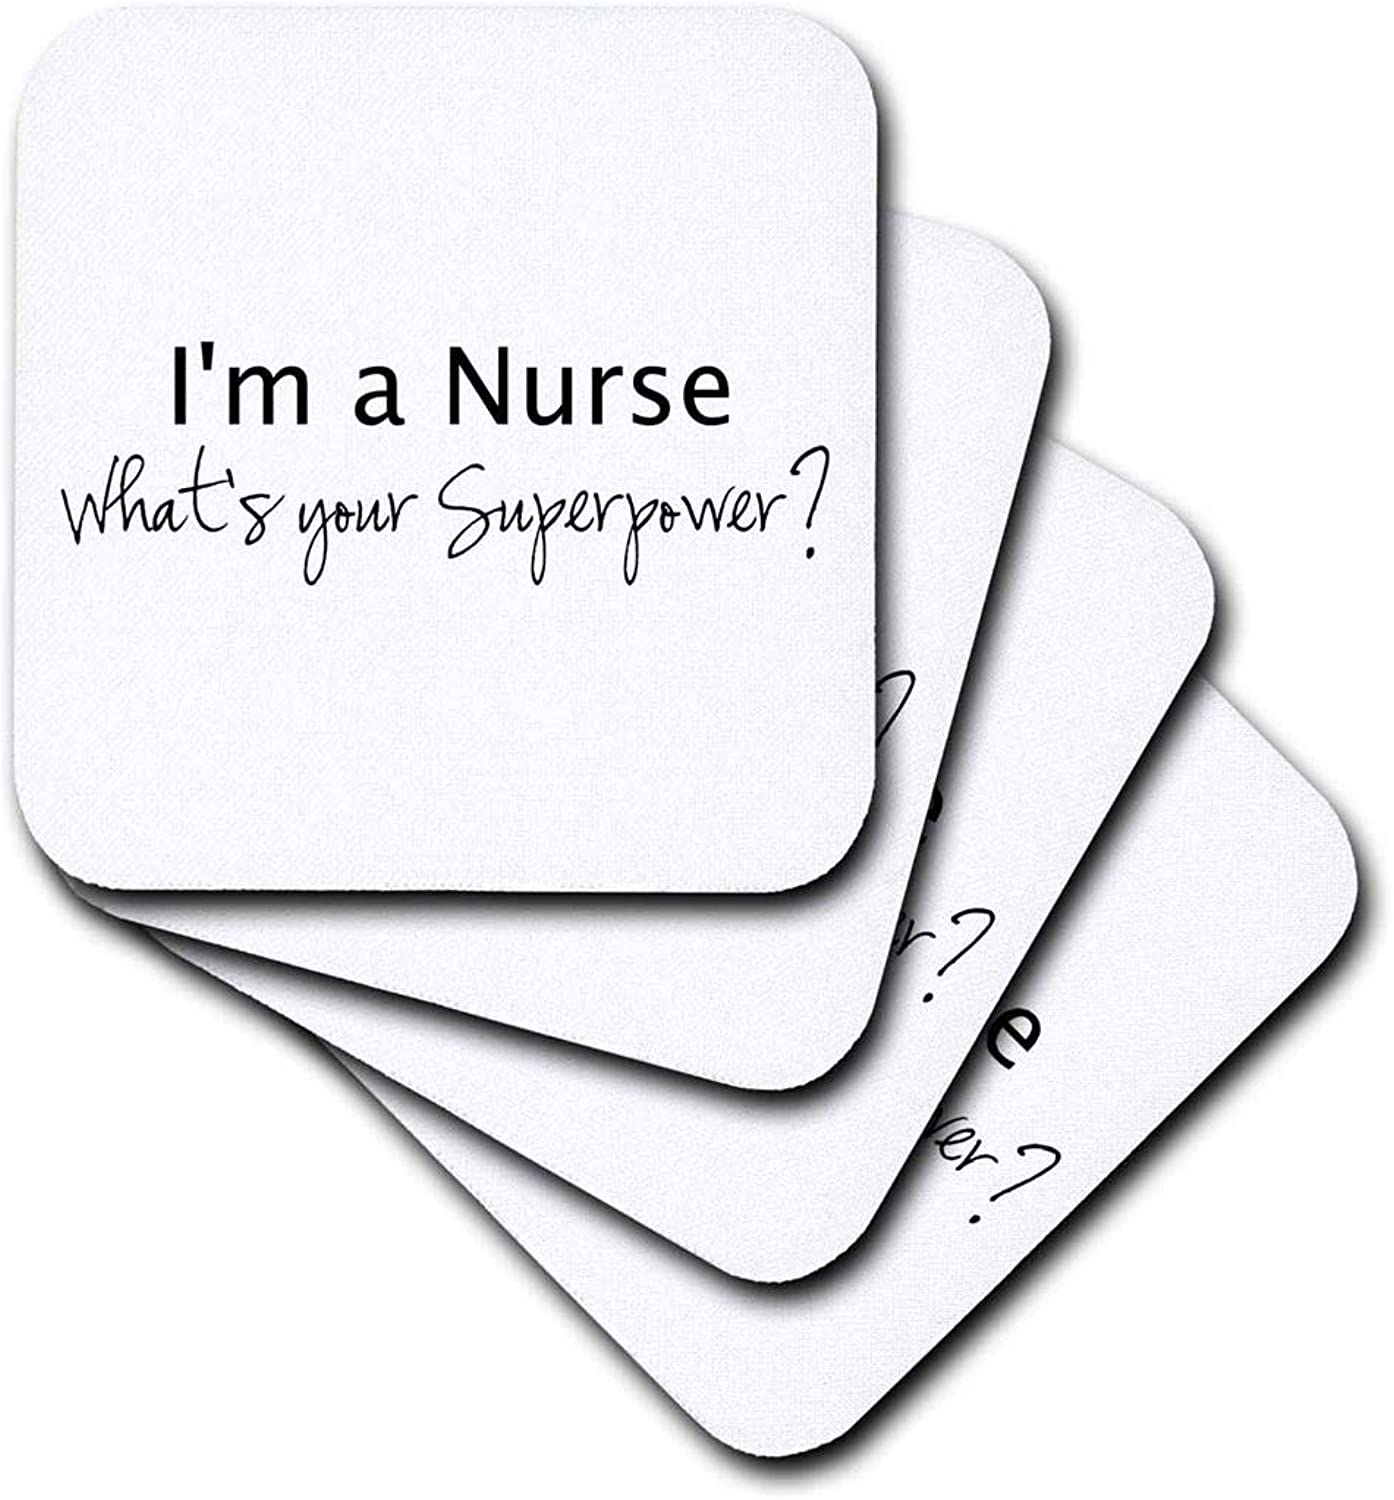 (set-of-8-Soft) - 3dpink CST_184947_2 Im a Nurse Whats Your Superpower Funny Medical Profession Gift Soft Coasters, Set of 8